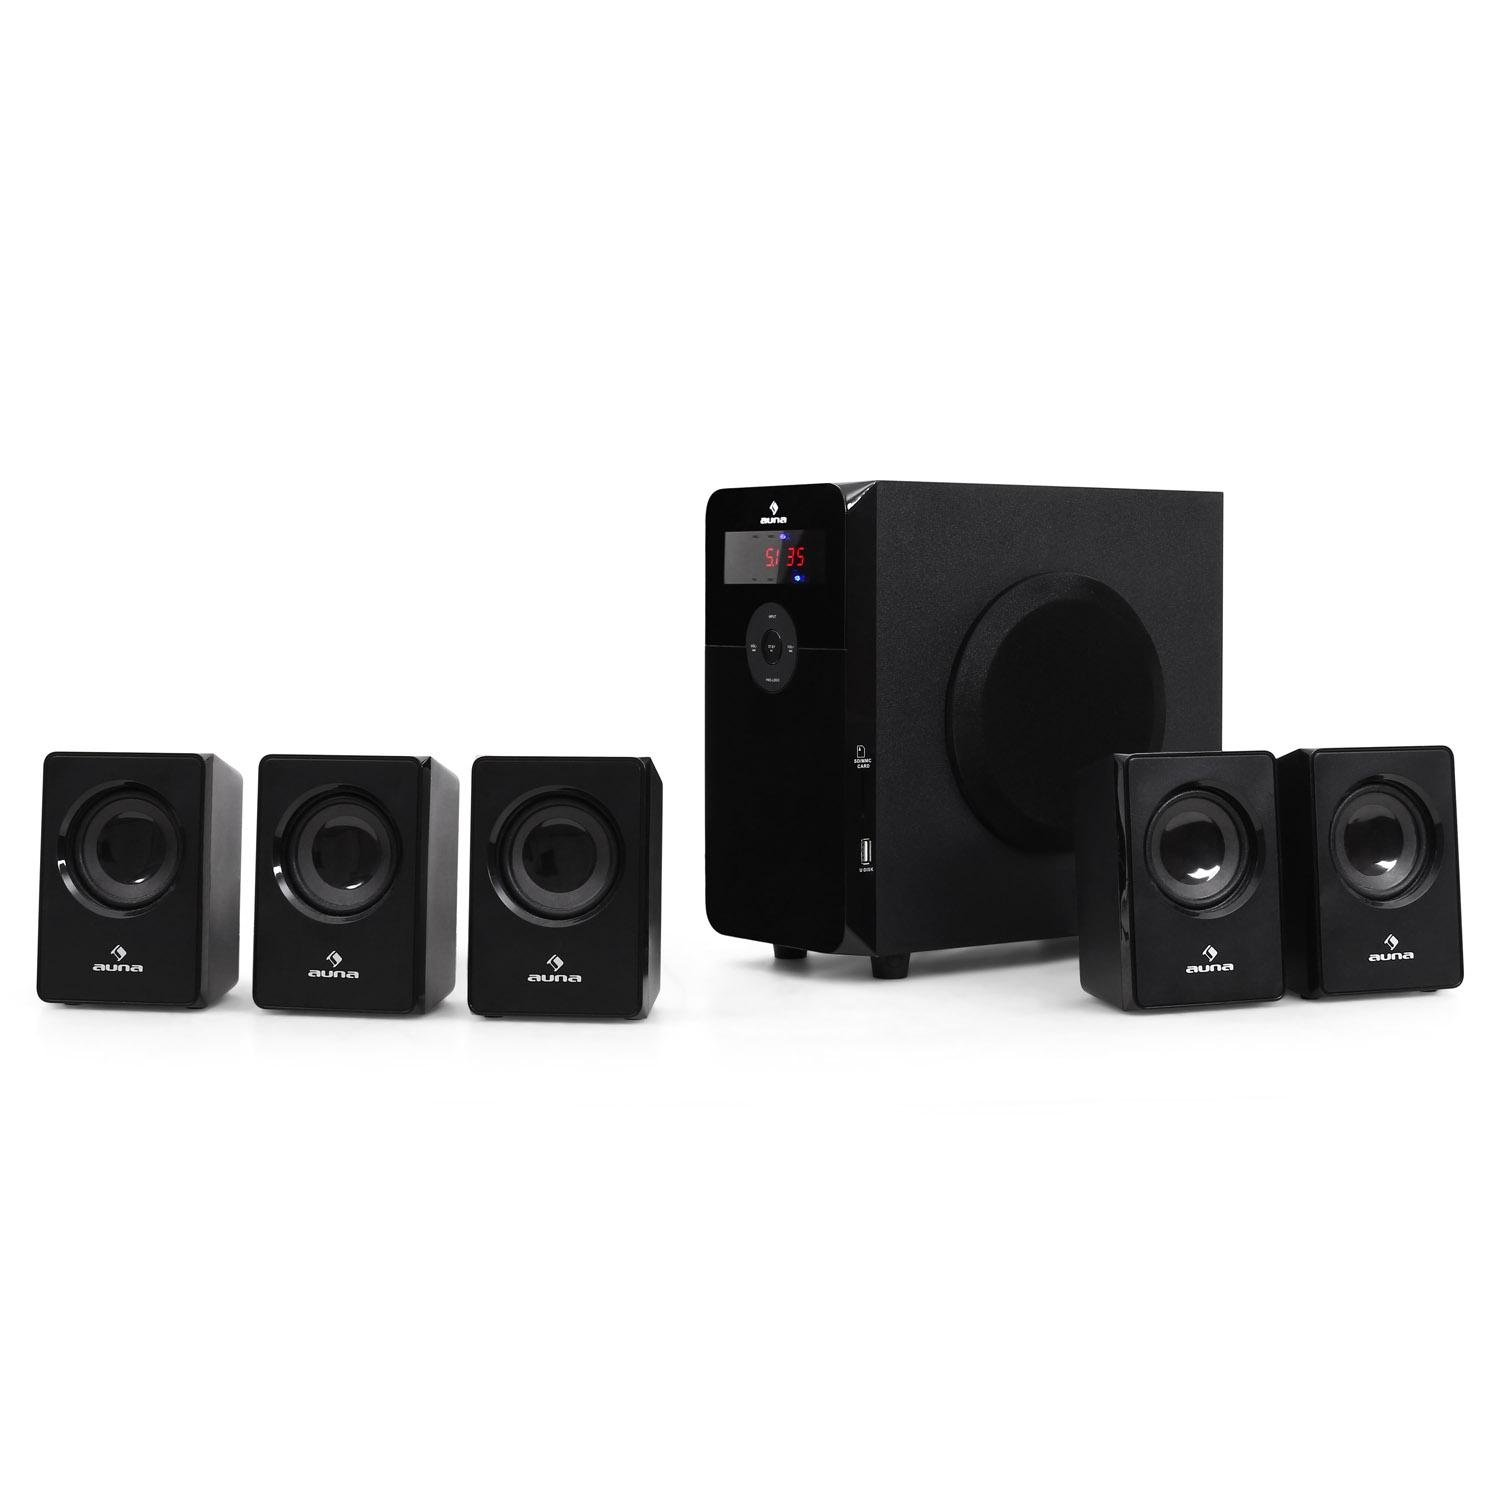 200 Watts max Bluetooth Touch Display OneSide Bass Reflex Subwoofer SD Black USB incl Sound System auna Areal Touch 5.1 Speaker System Surround Audio System Remote Control